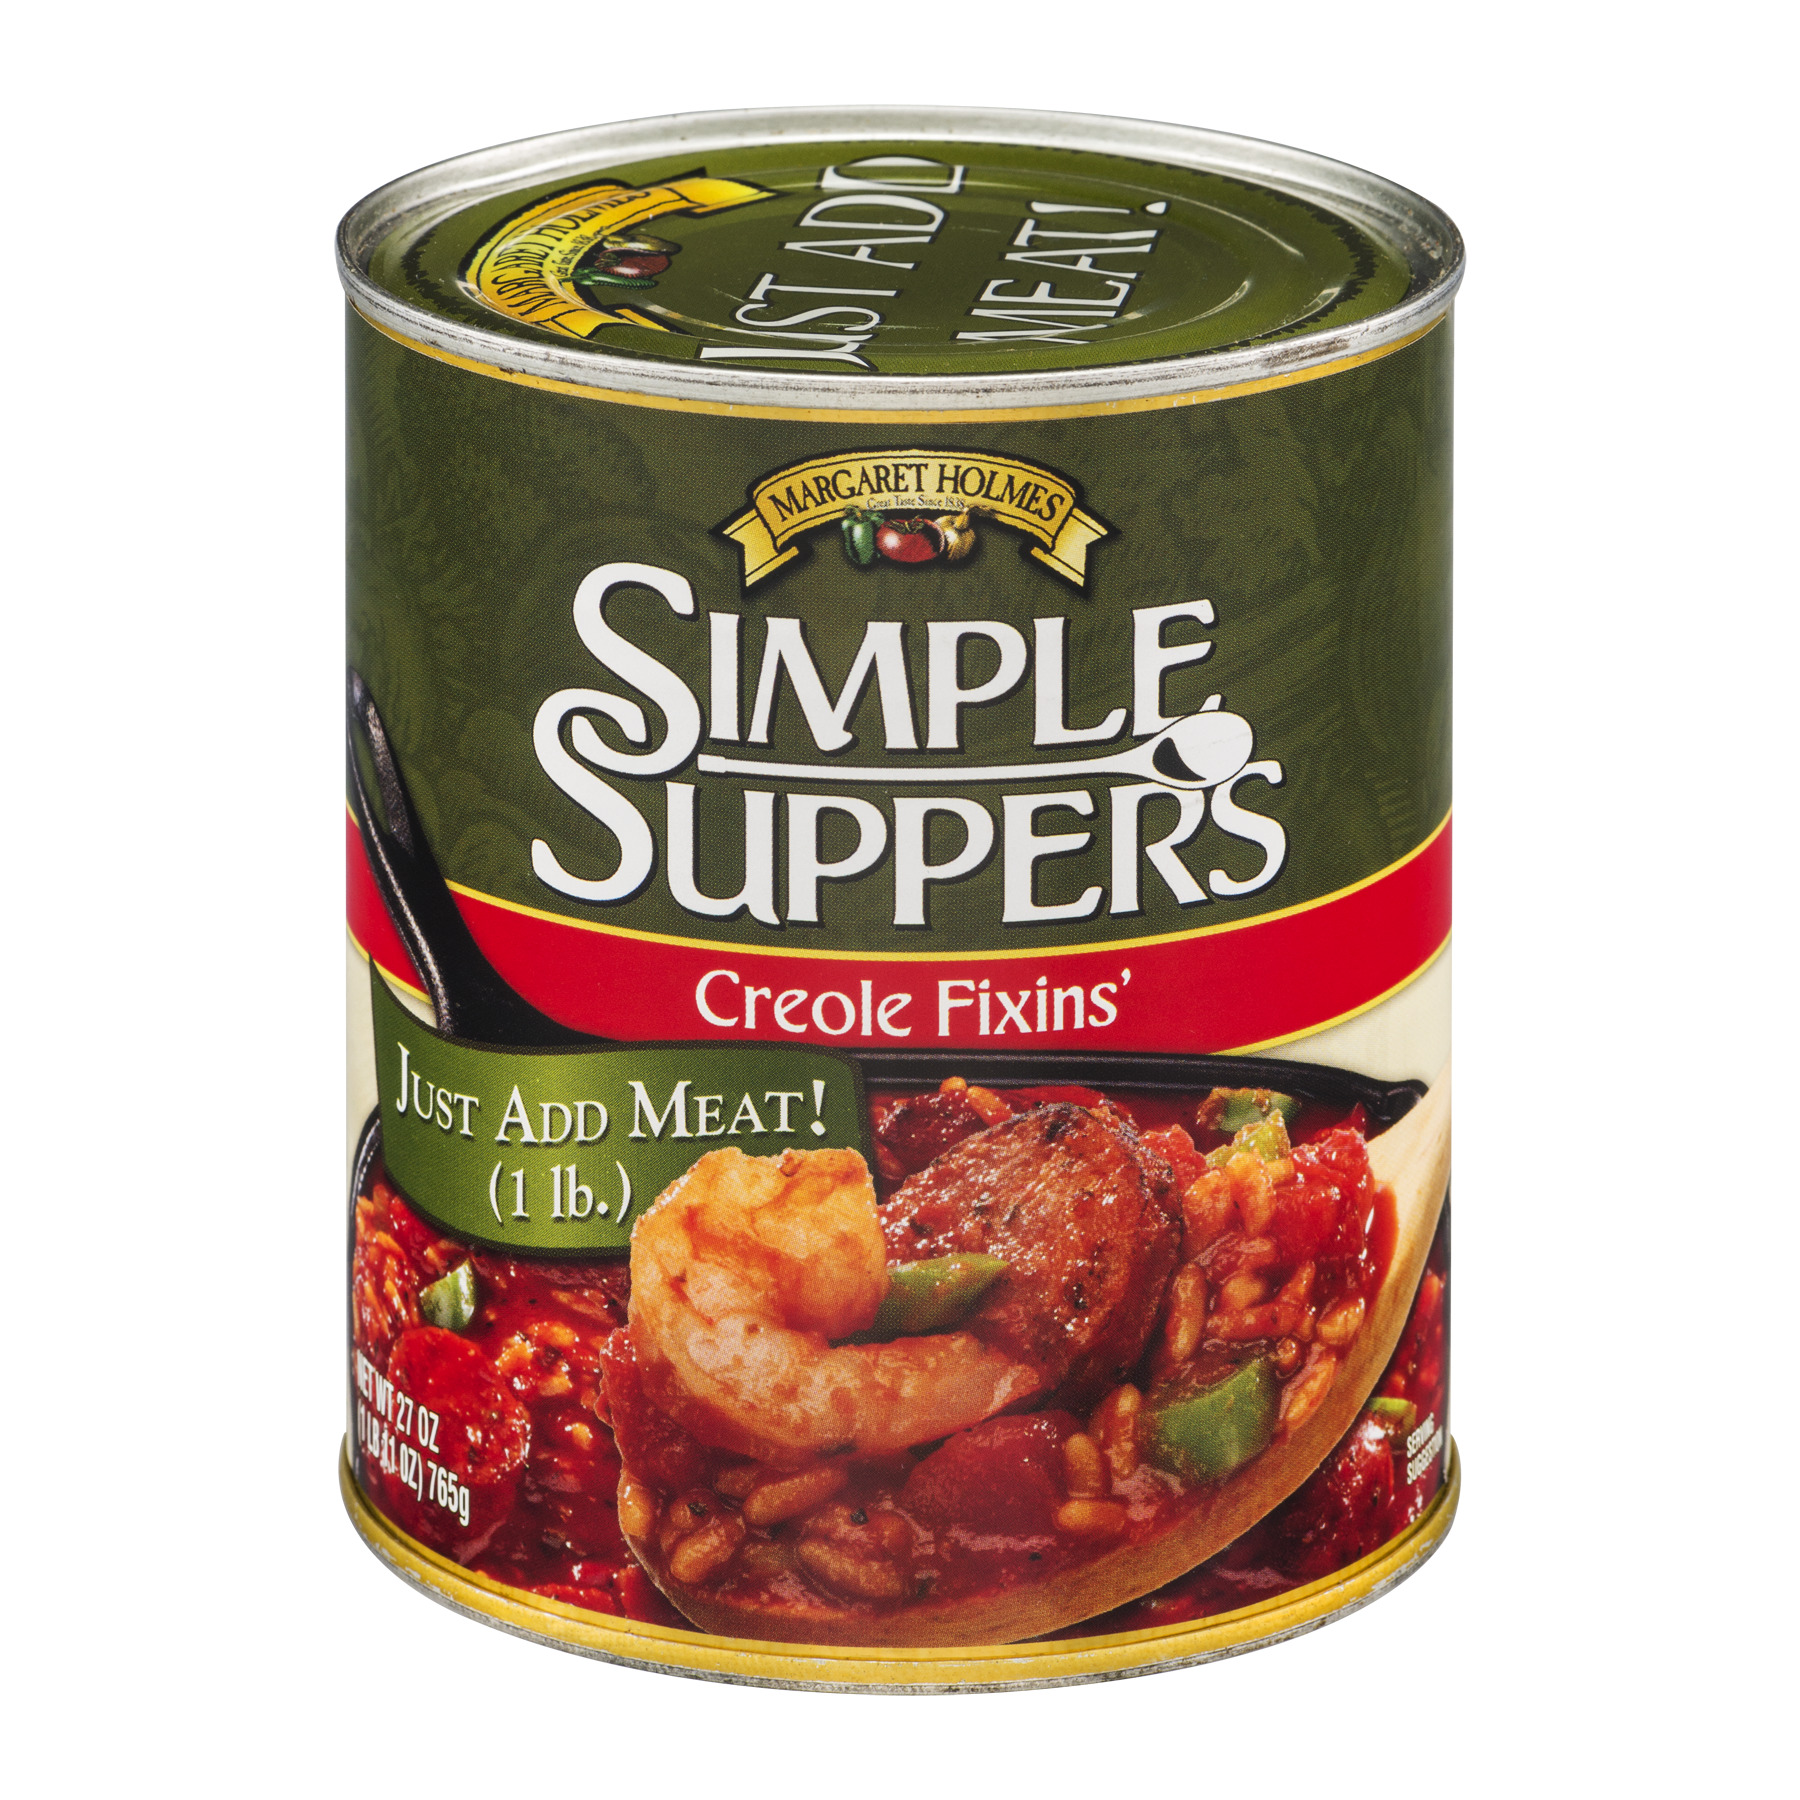 Margaret Holmes Simple Suppers Creole Fixins', 27oz